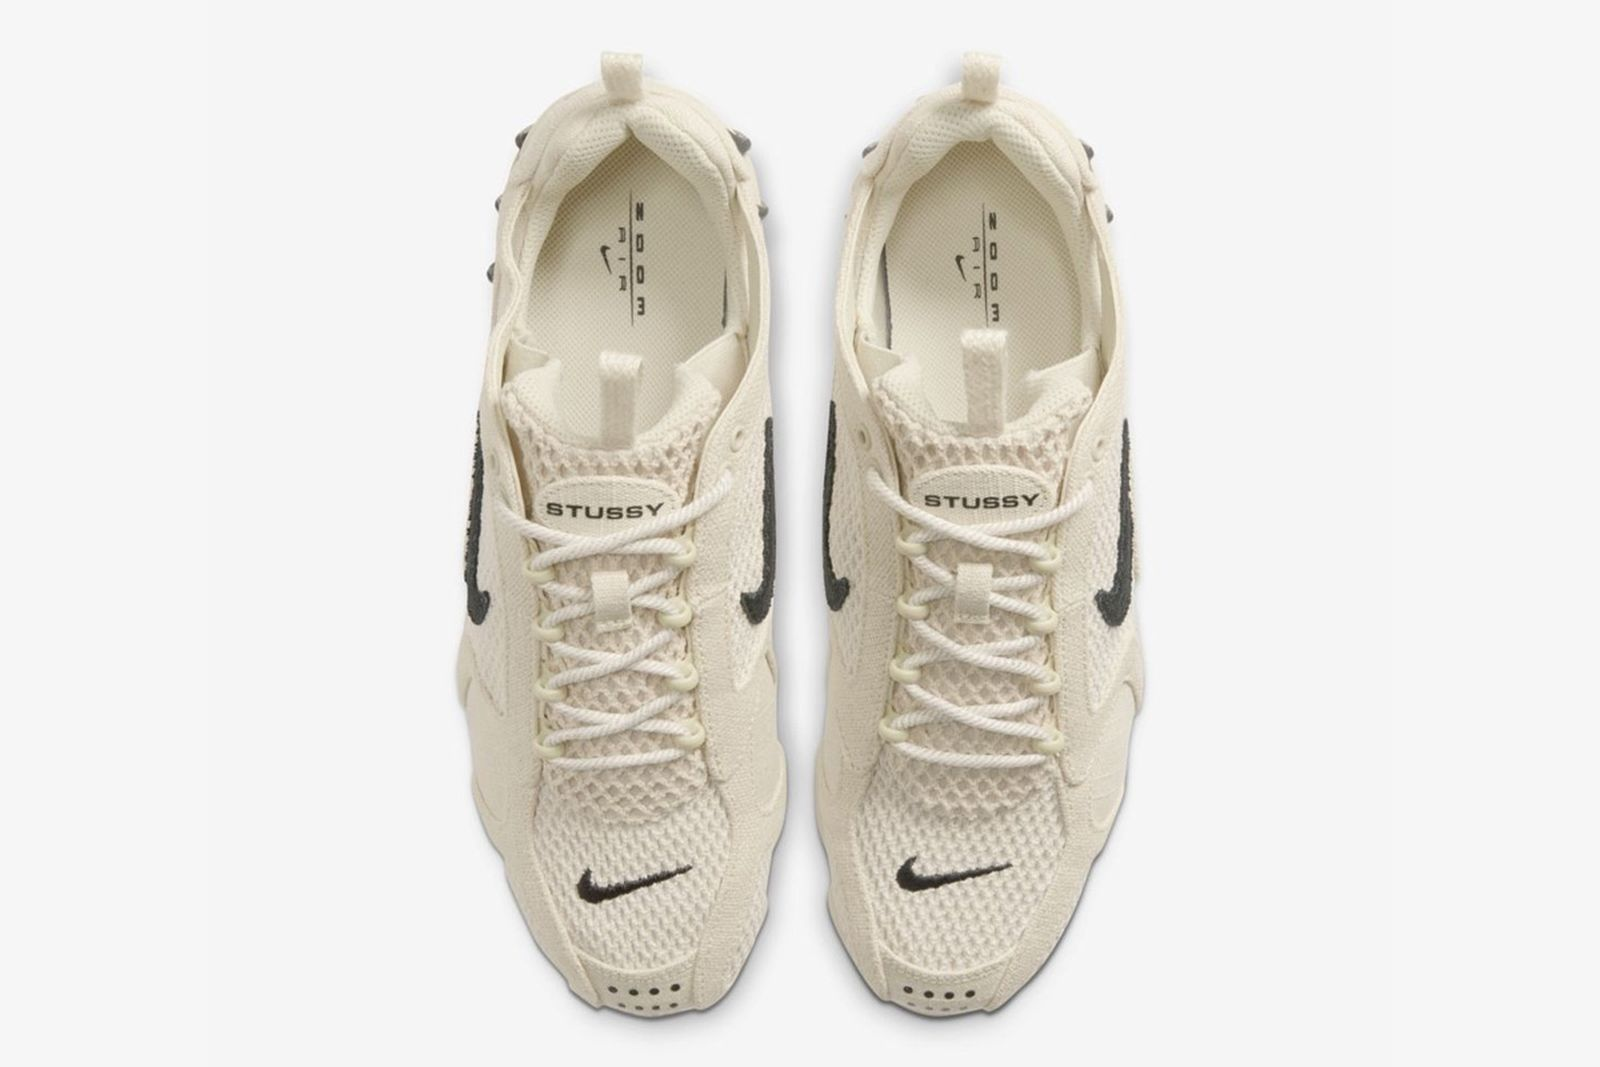 stussy-nike-zoom-spiridon-cage-2-release-date-price-08